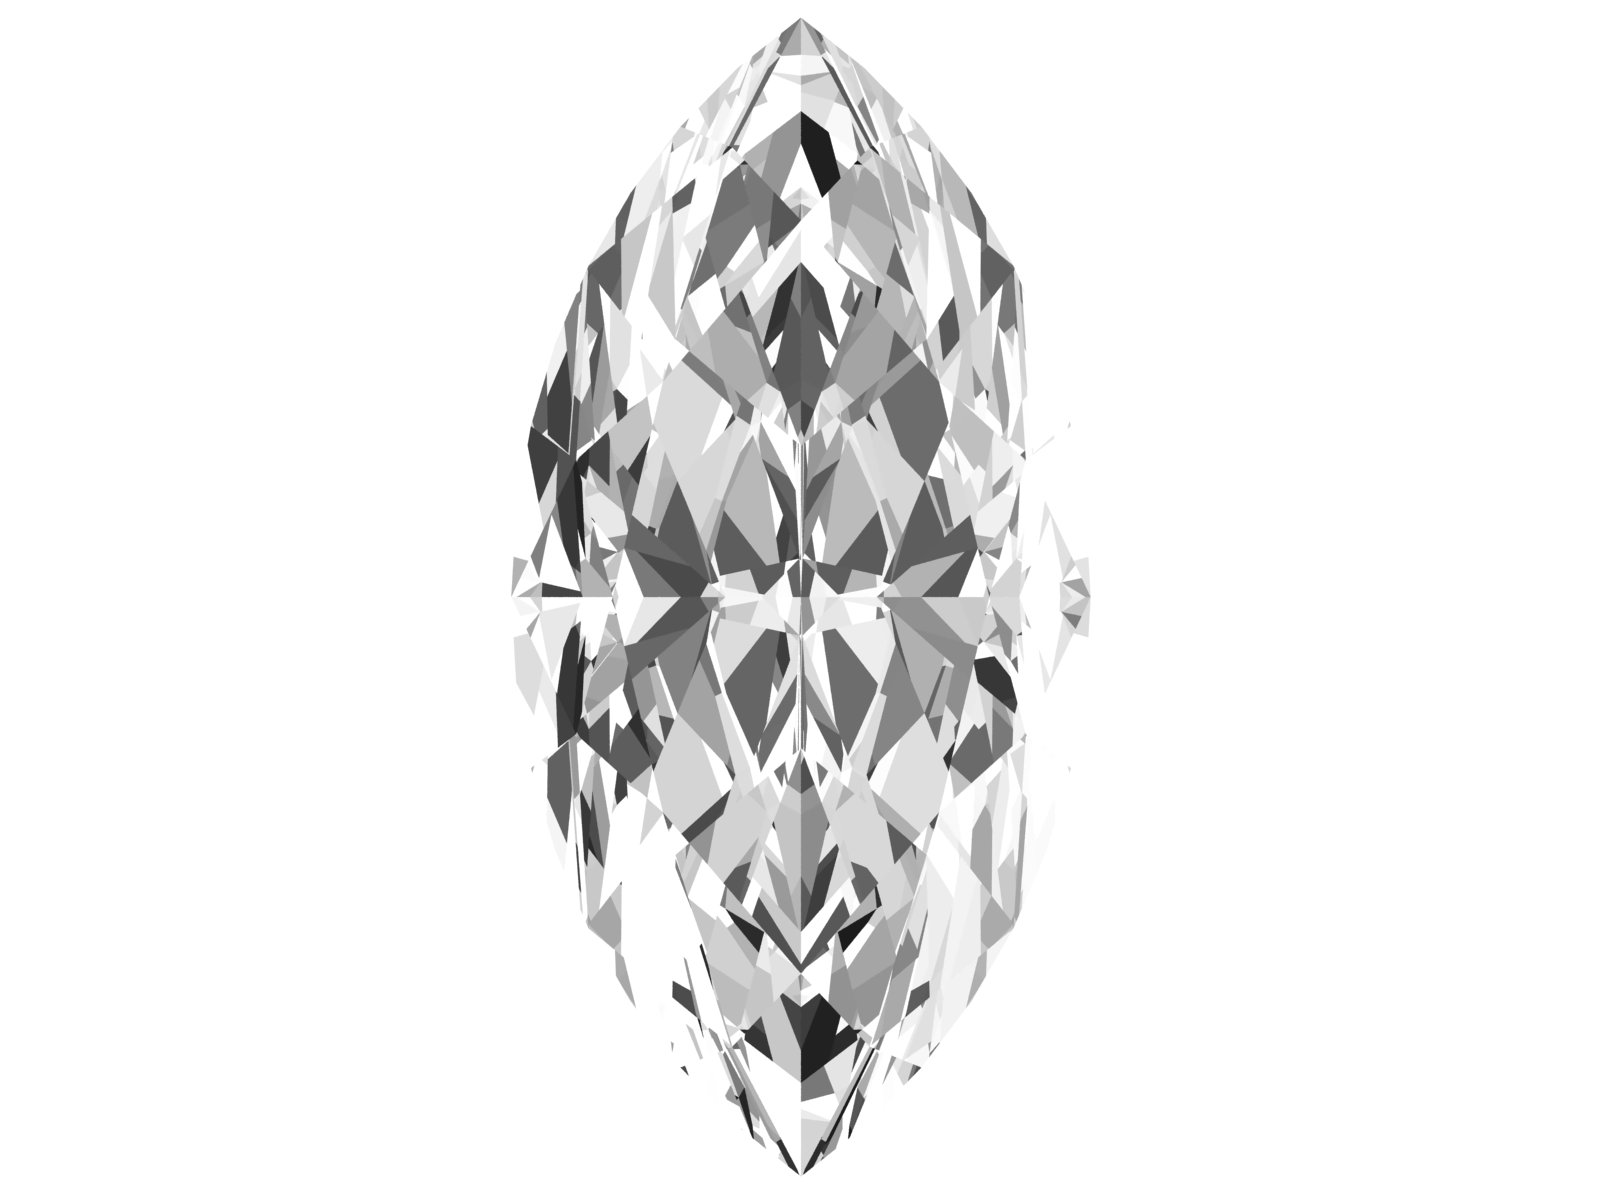 0.24 Carat Marquise Diamond